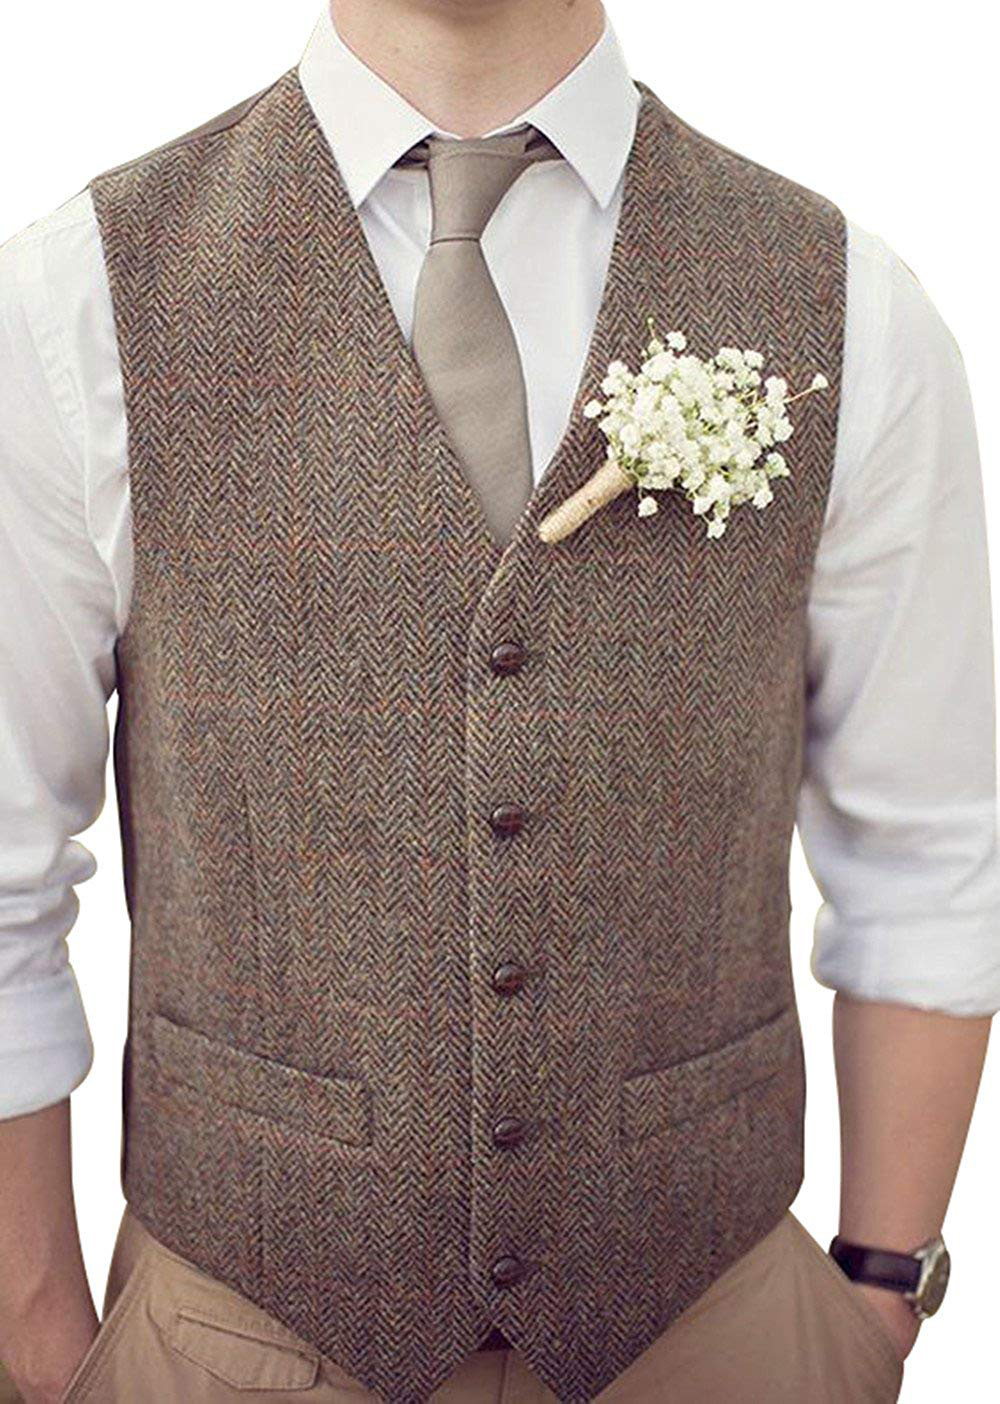 Suits & Blazers Men's Clothing 2019 Vintage Farm Wedding Brown Tweed Vest Classic Formal Grooms Suit Vest Slim Fit Men Suit Vest Plus Size Costume Homme Gilet